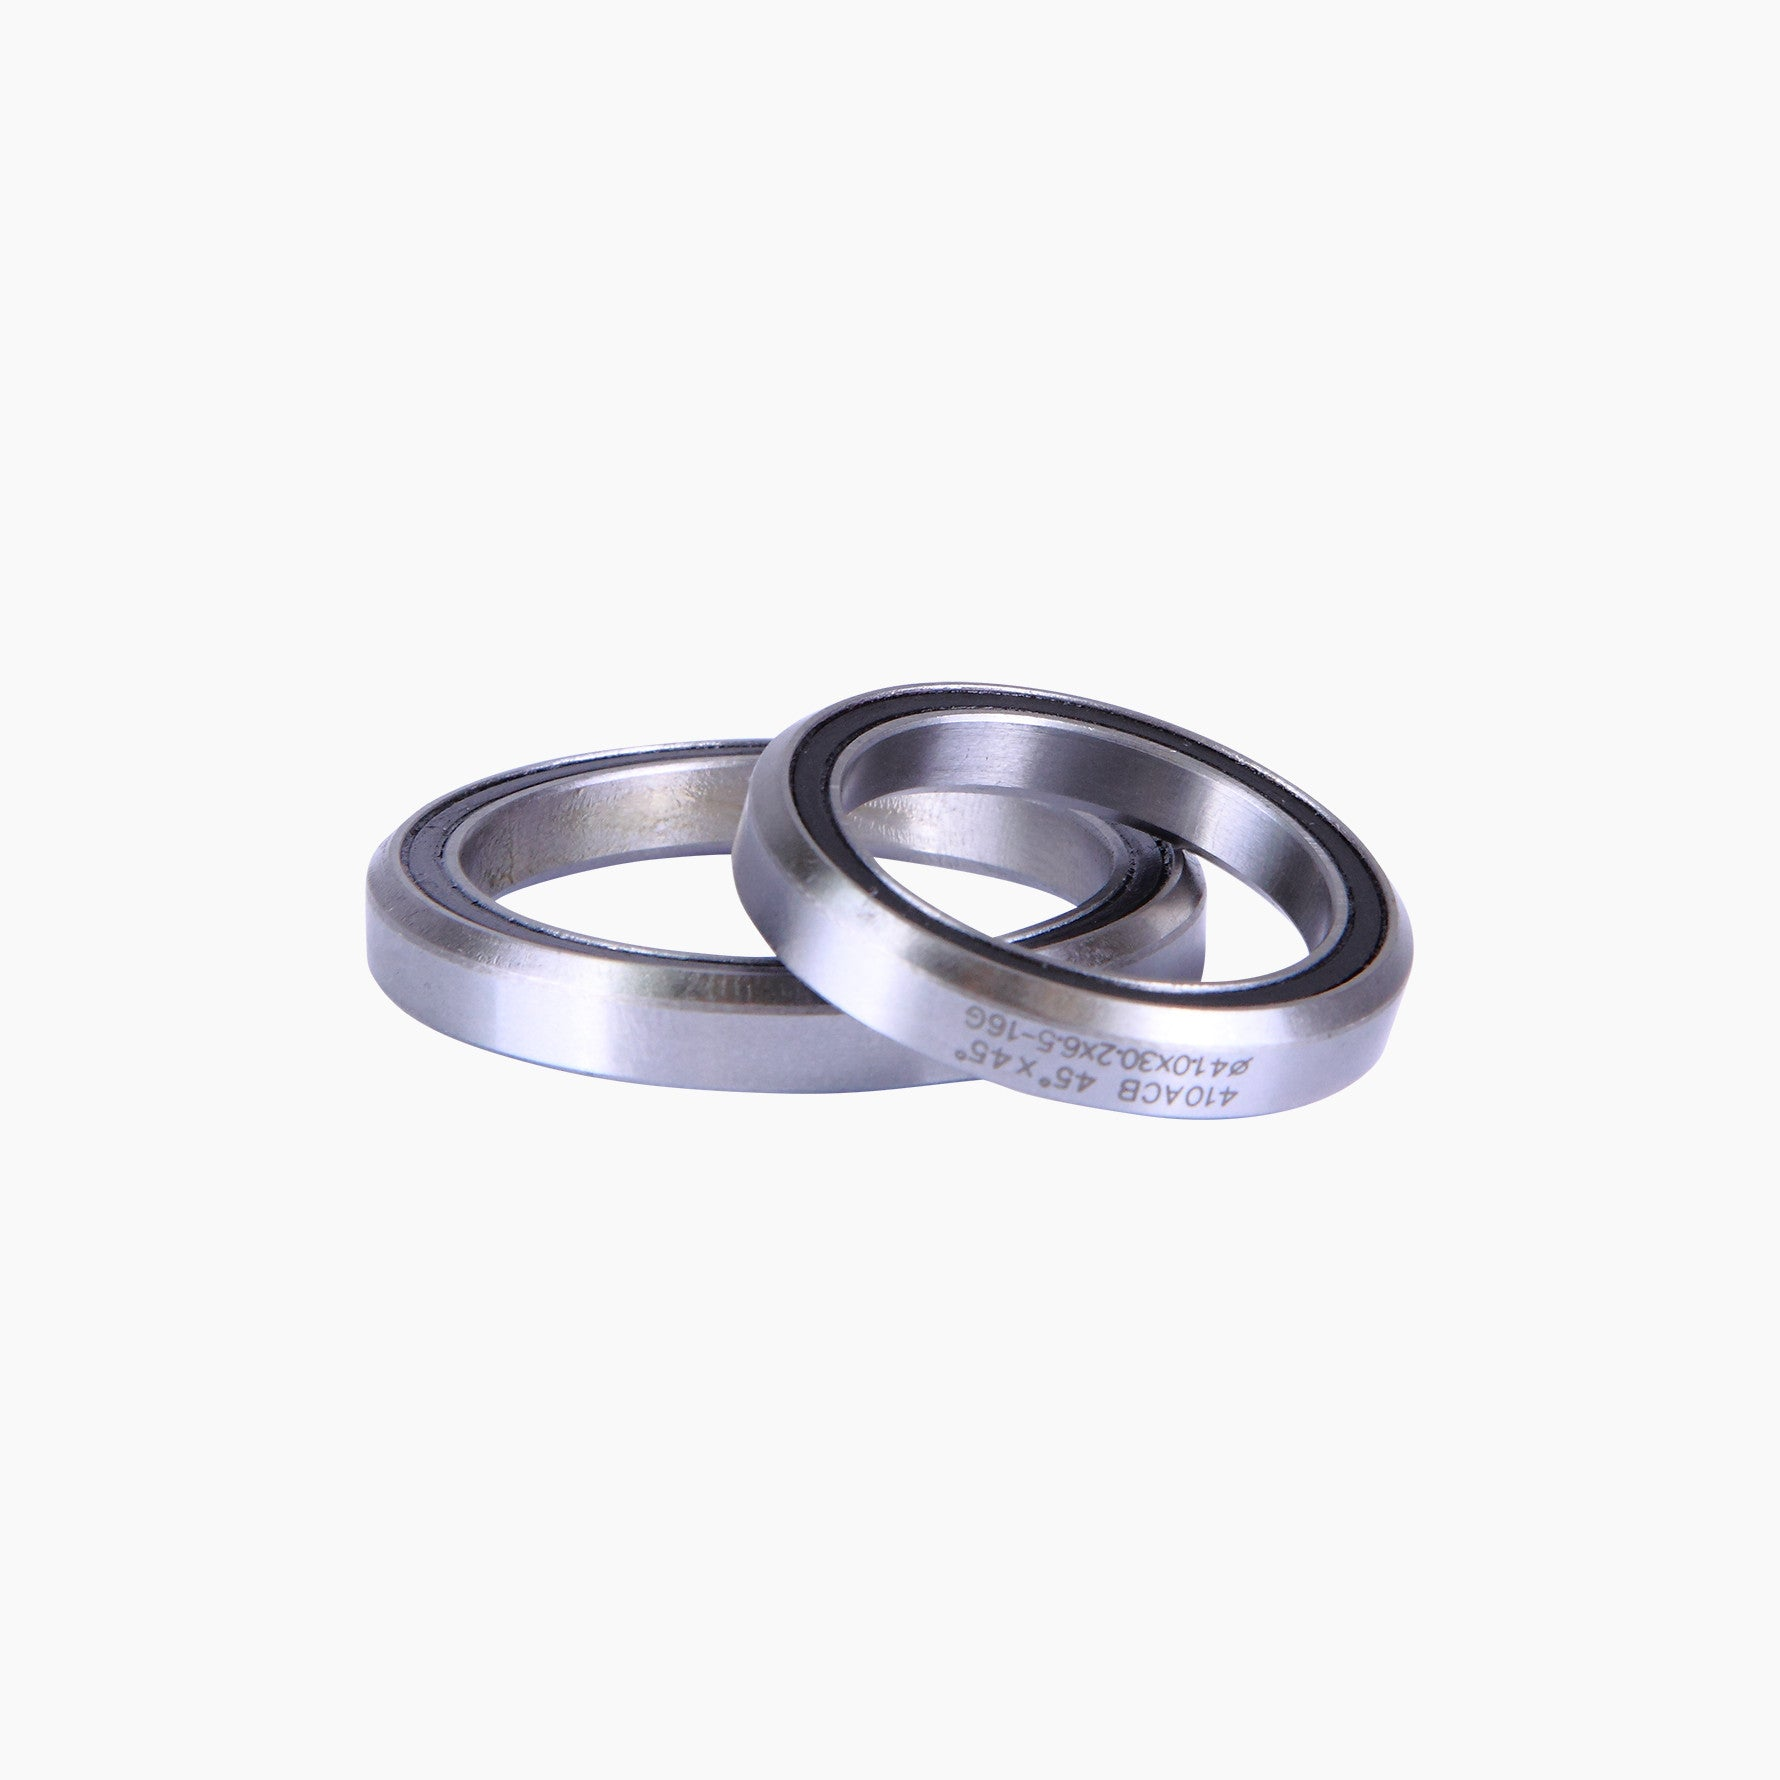 Headset Bearing for the TK036A Tapered Headset // Top & Bottom (Pair)